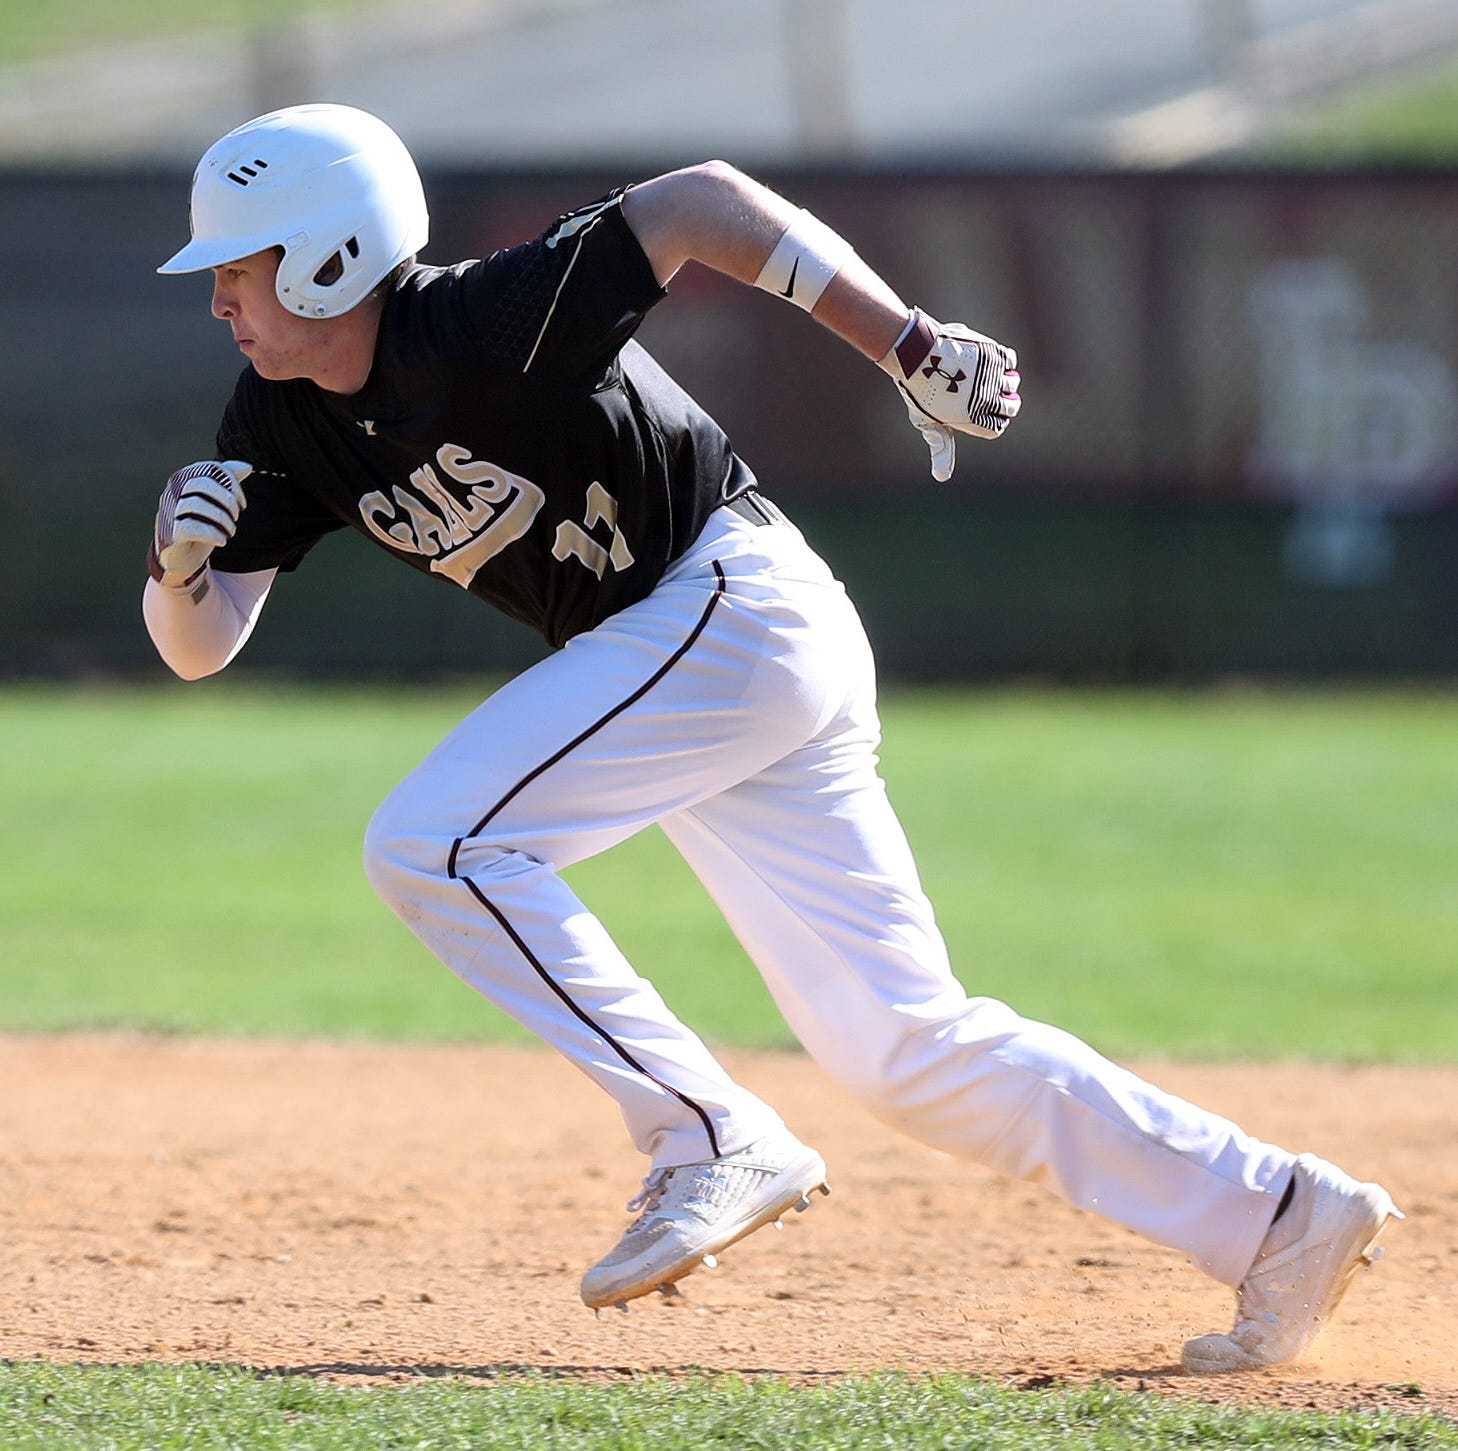 Baseball rankings: Iona Prep still No. 1, but unbeaten Suffern and Ketcham close behind